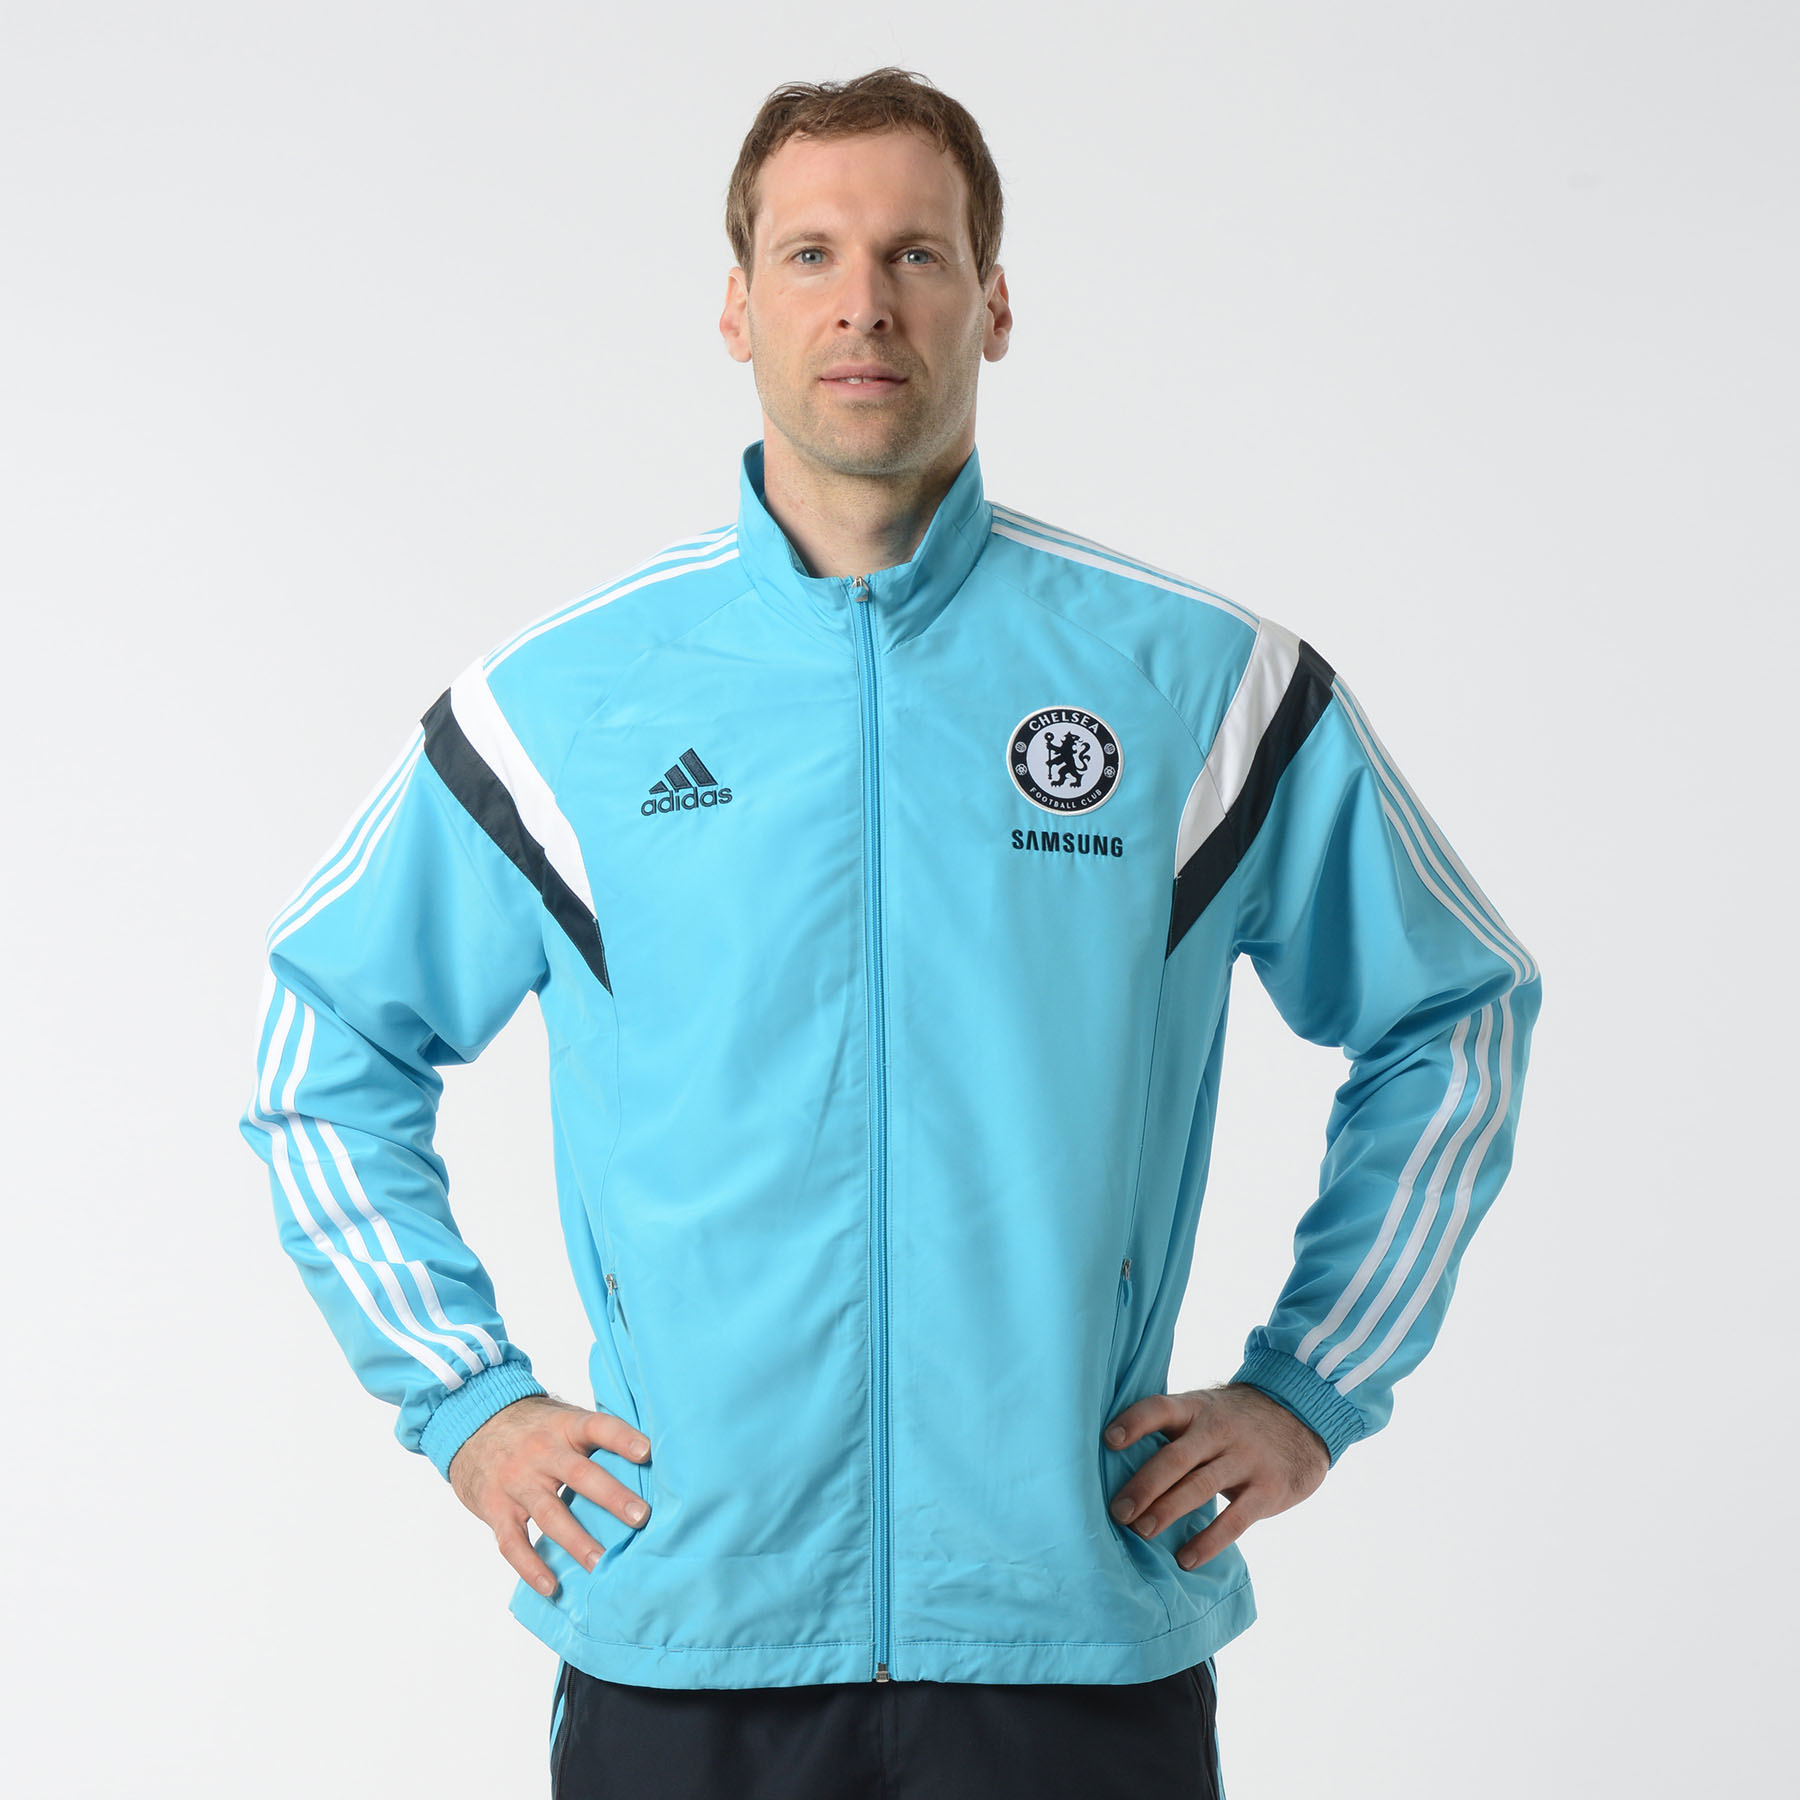 Chelsea Training Presentation Jacket Blue   Enjoy a great performance every time you play in this Chelsea Presentation Jacket. Styled with a woven Chelsea club crest and adidas three stripe logo, this blue presentation jacket was designed with style in mind.   Featuring a zip front, elasticated cuffs and a full mesh lining, this comfortable and lightweight Chelsea presentation suit is perfect whether you're training or traveling down to Stamford Bridge.   Be